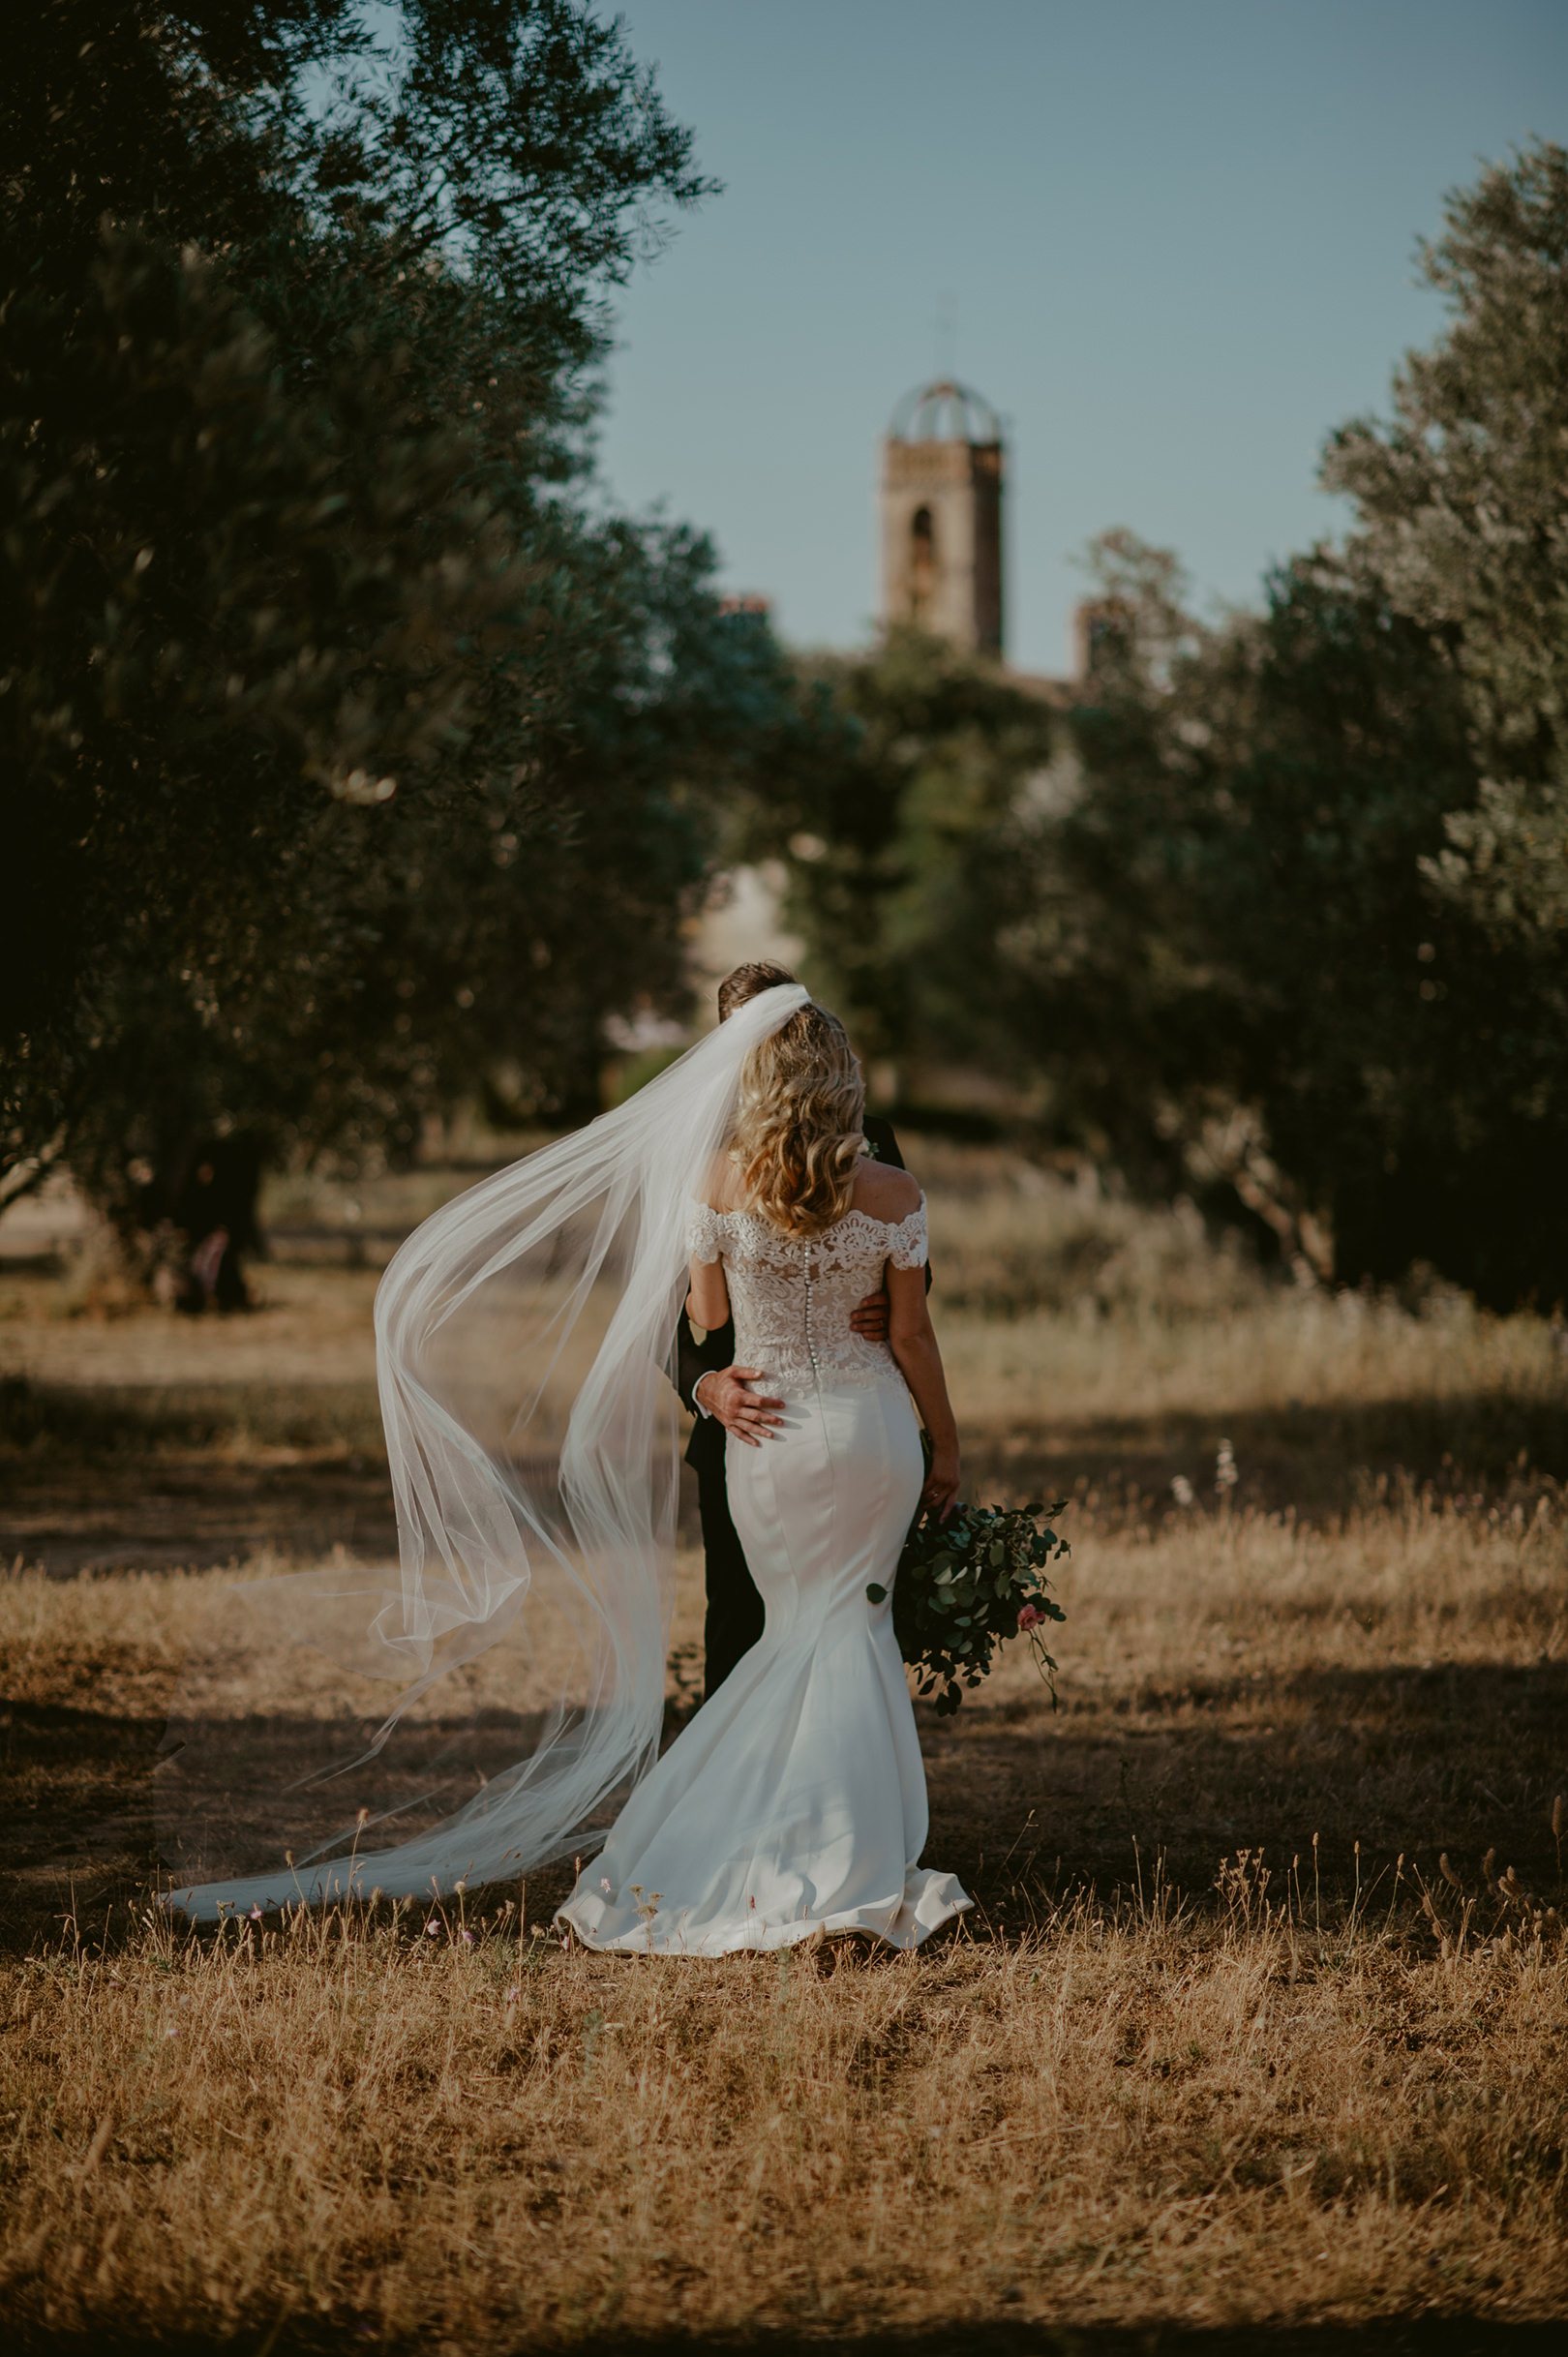 Beautiful location to get married in Girona